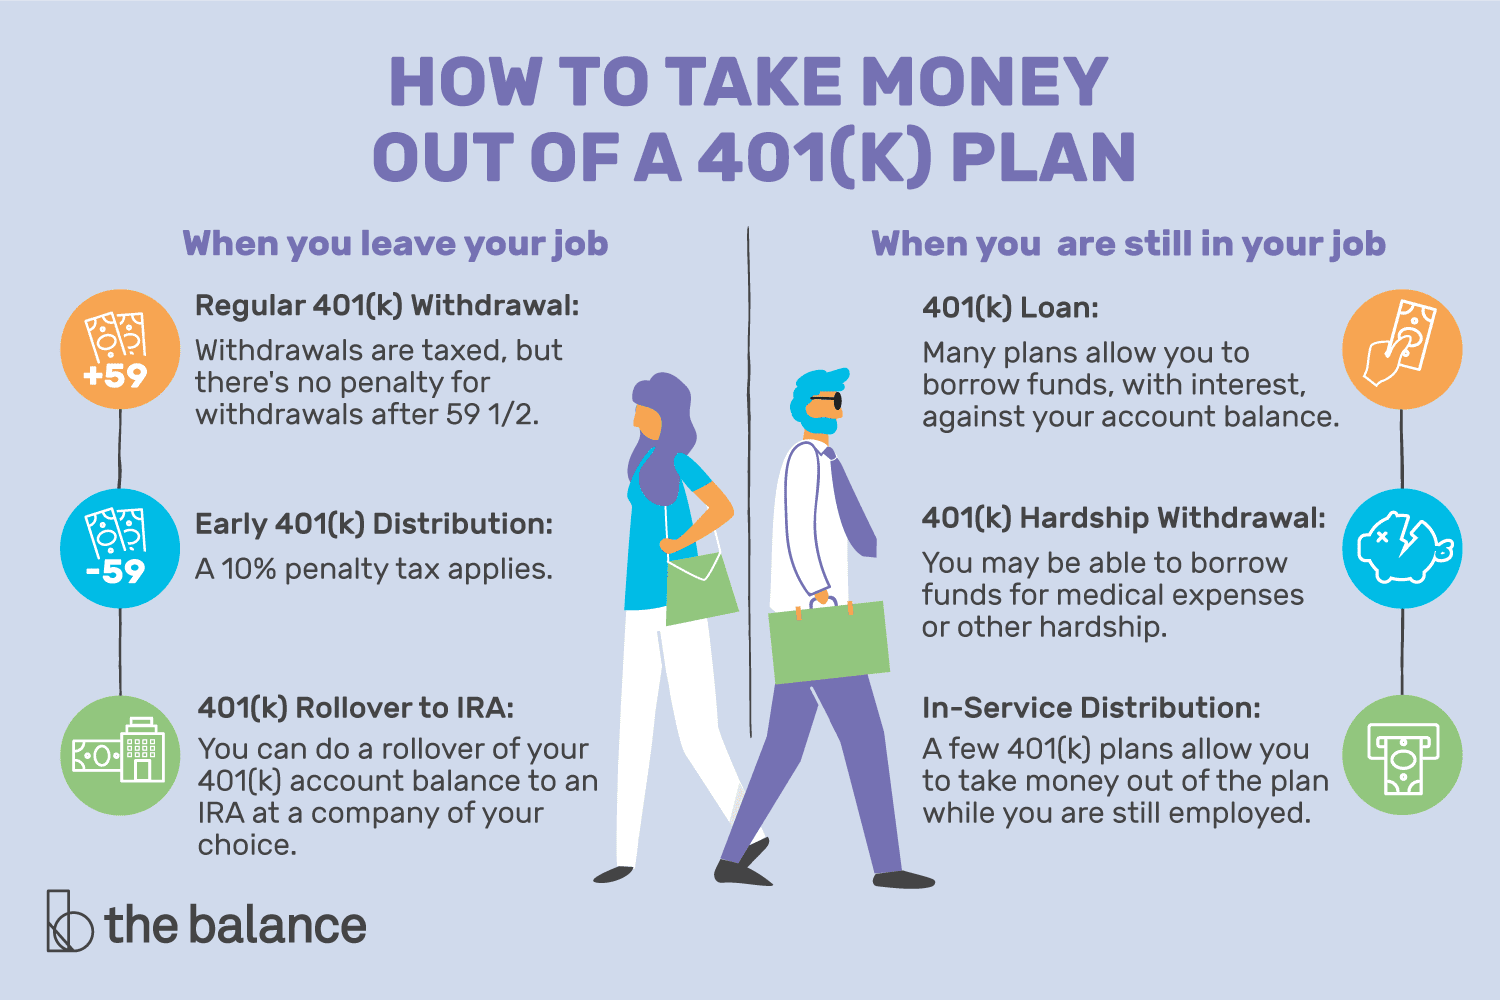 how to take money out of a 401 k plan